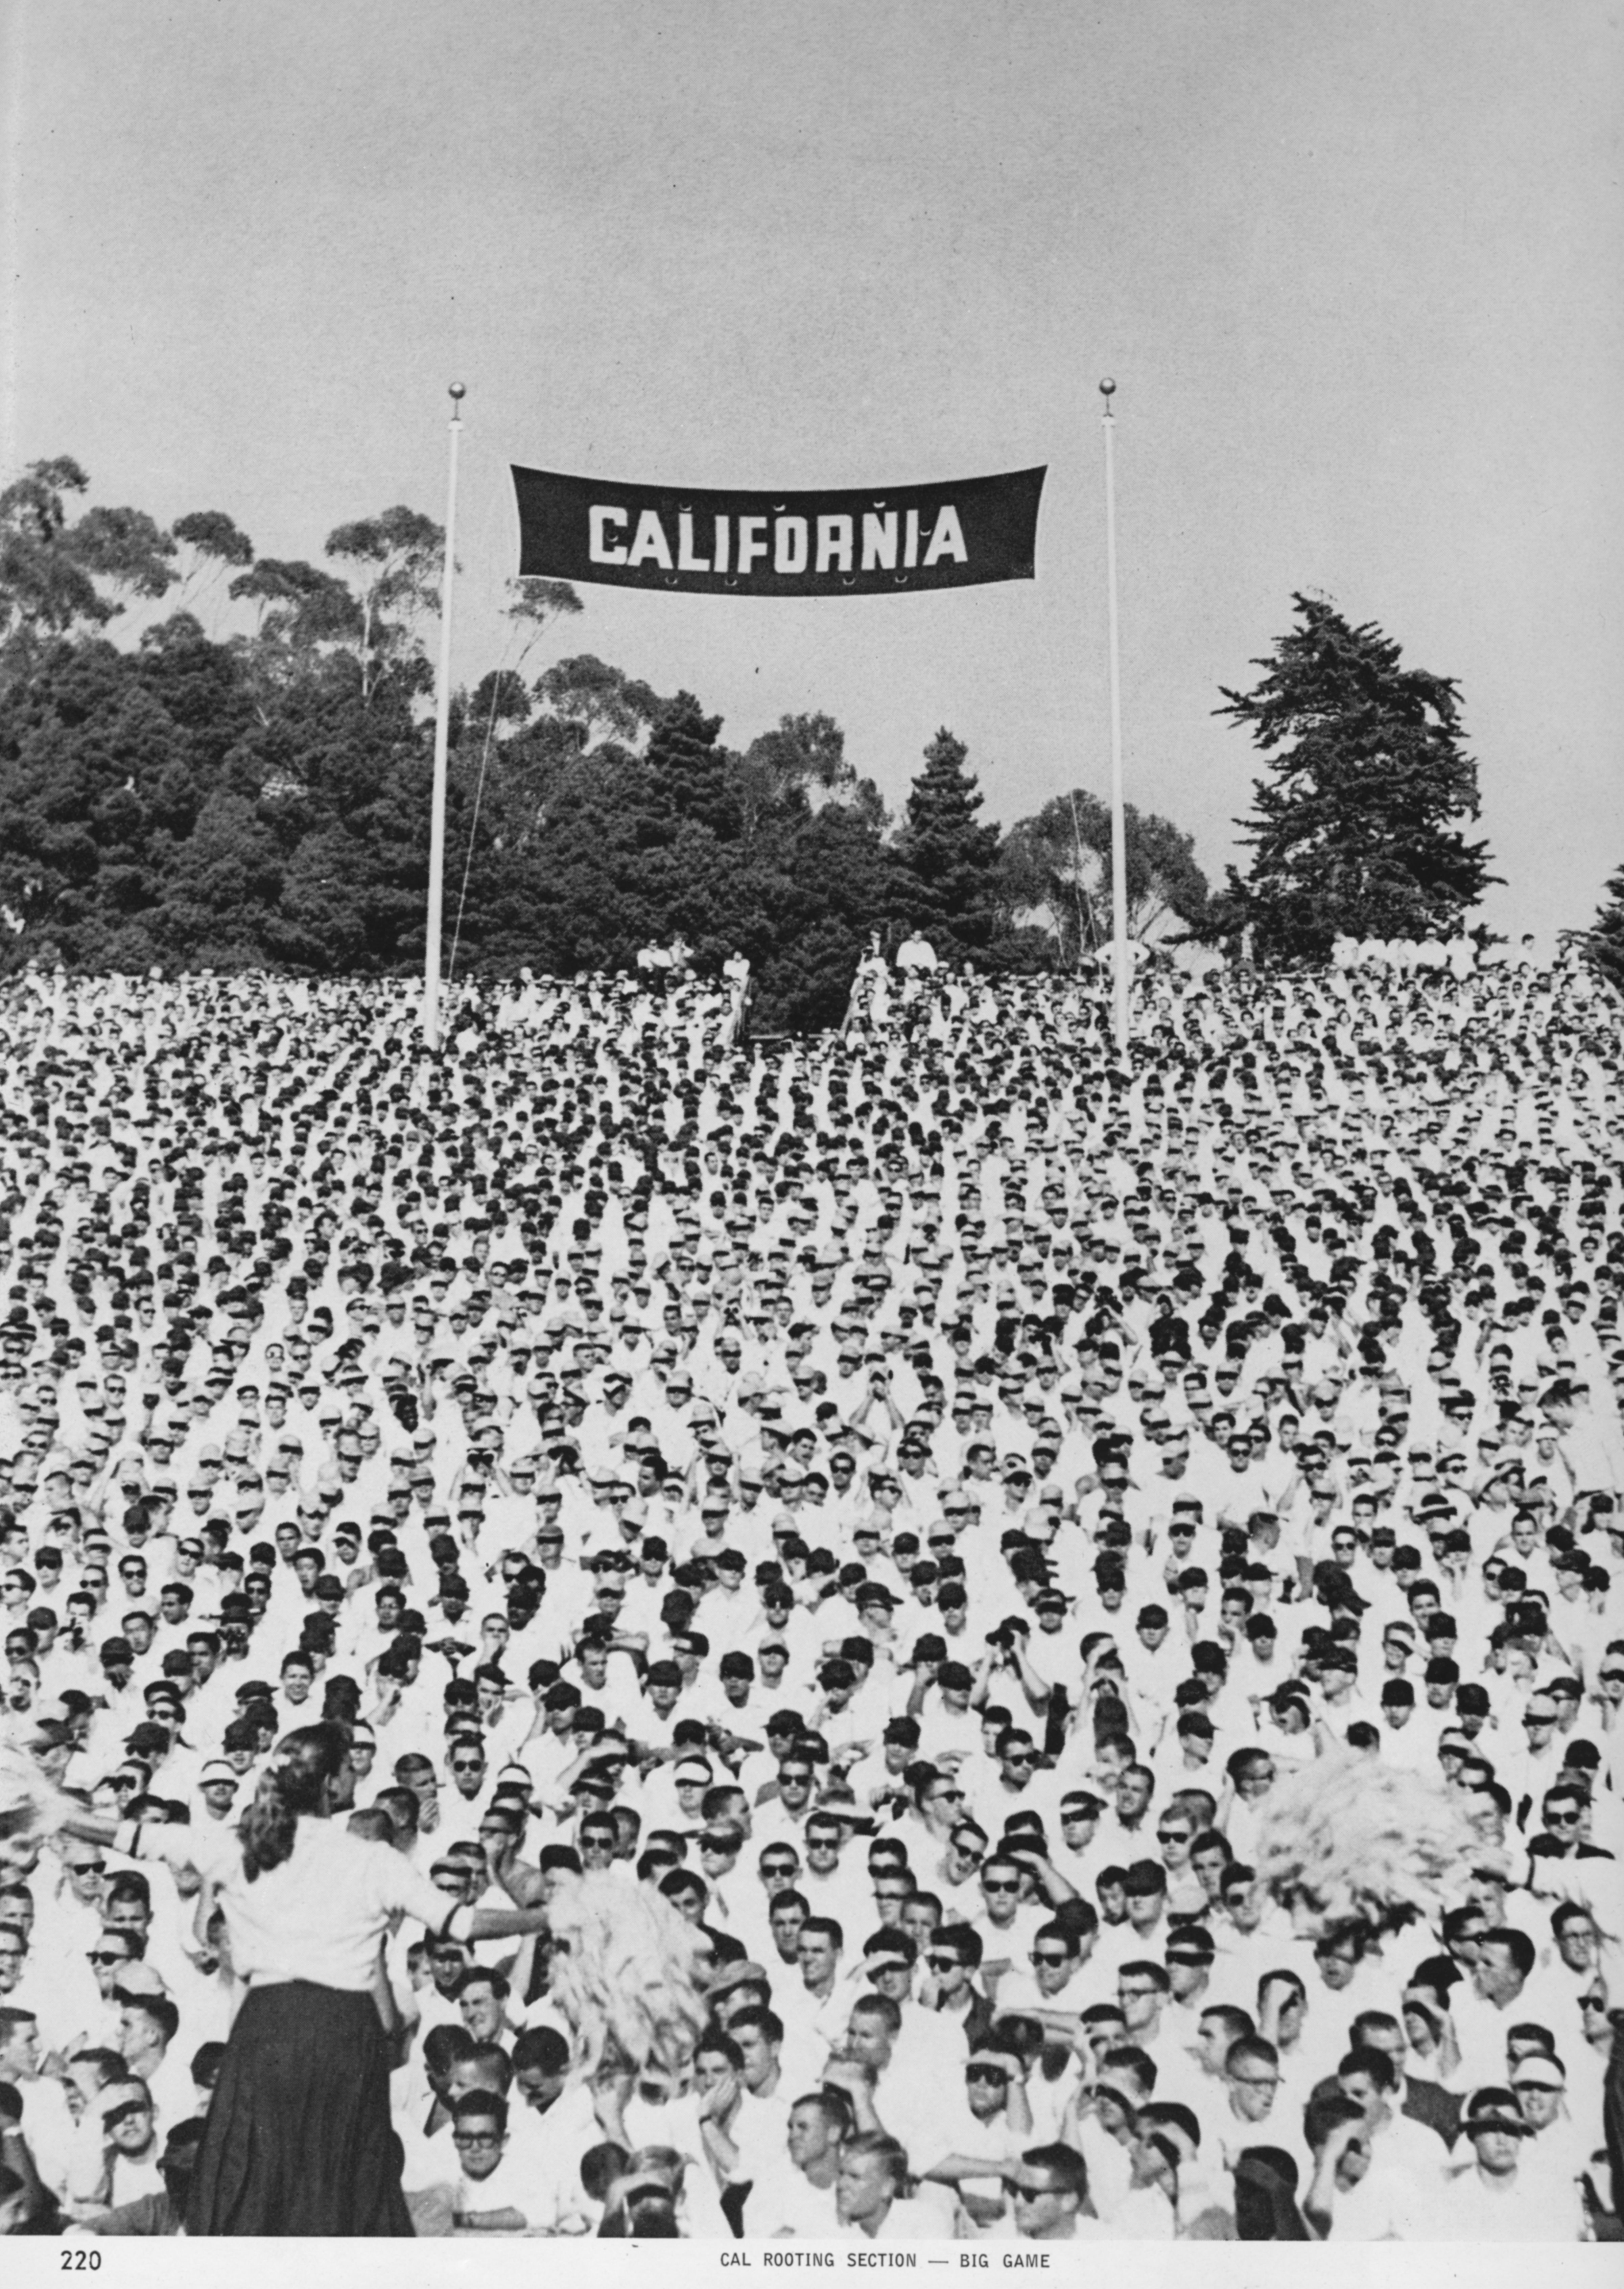 1958 Fans Rooting Section Cal Bears Bear Pride California Golden Bears